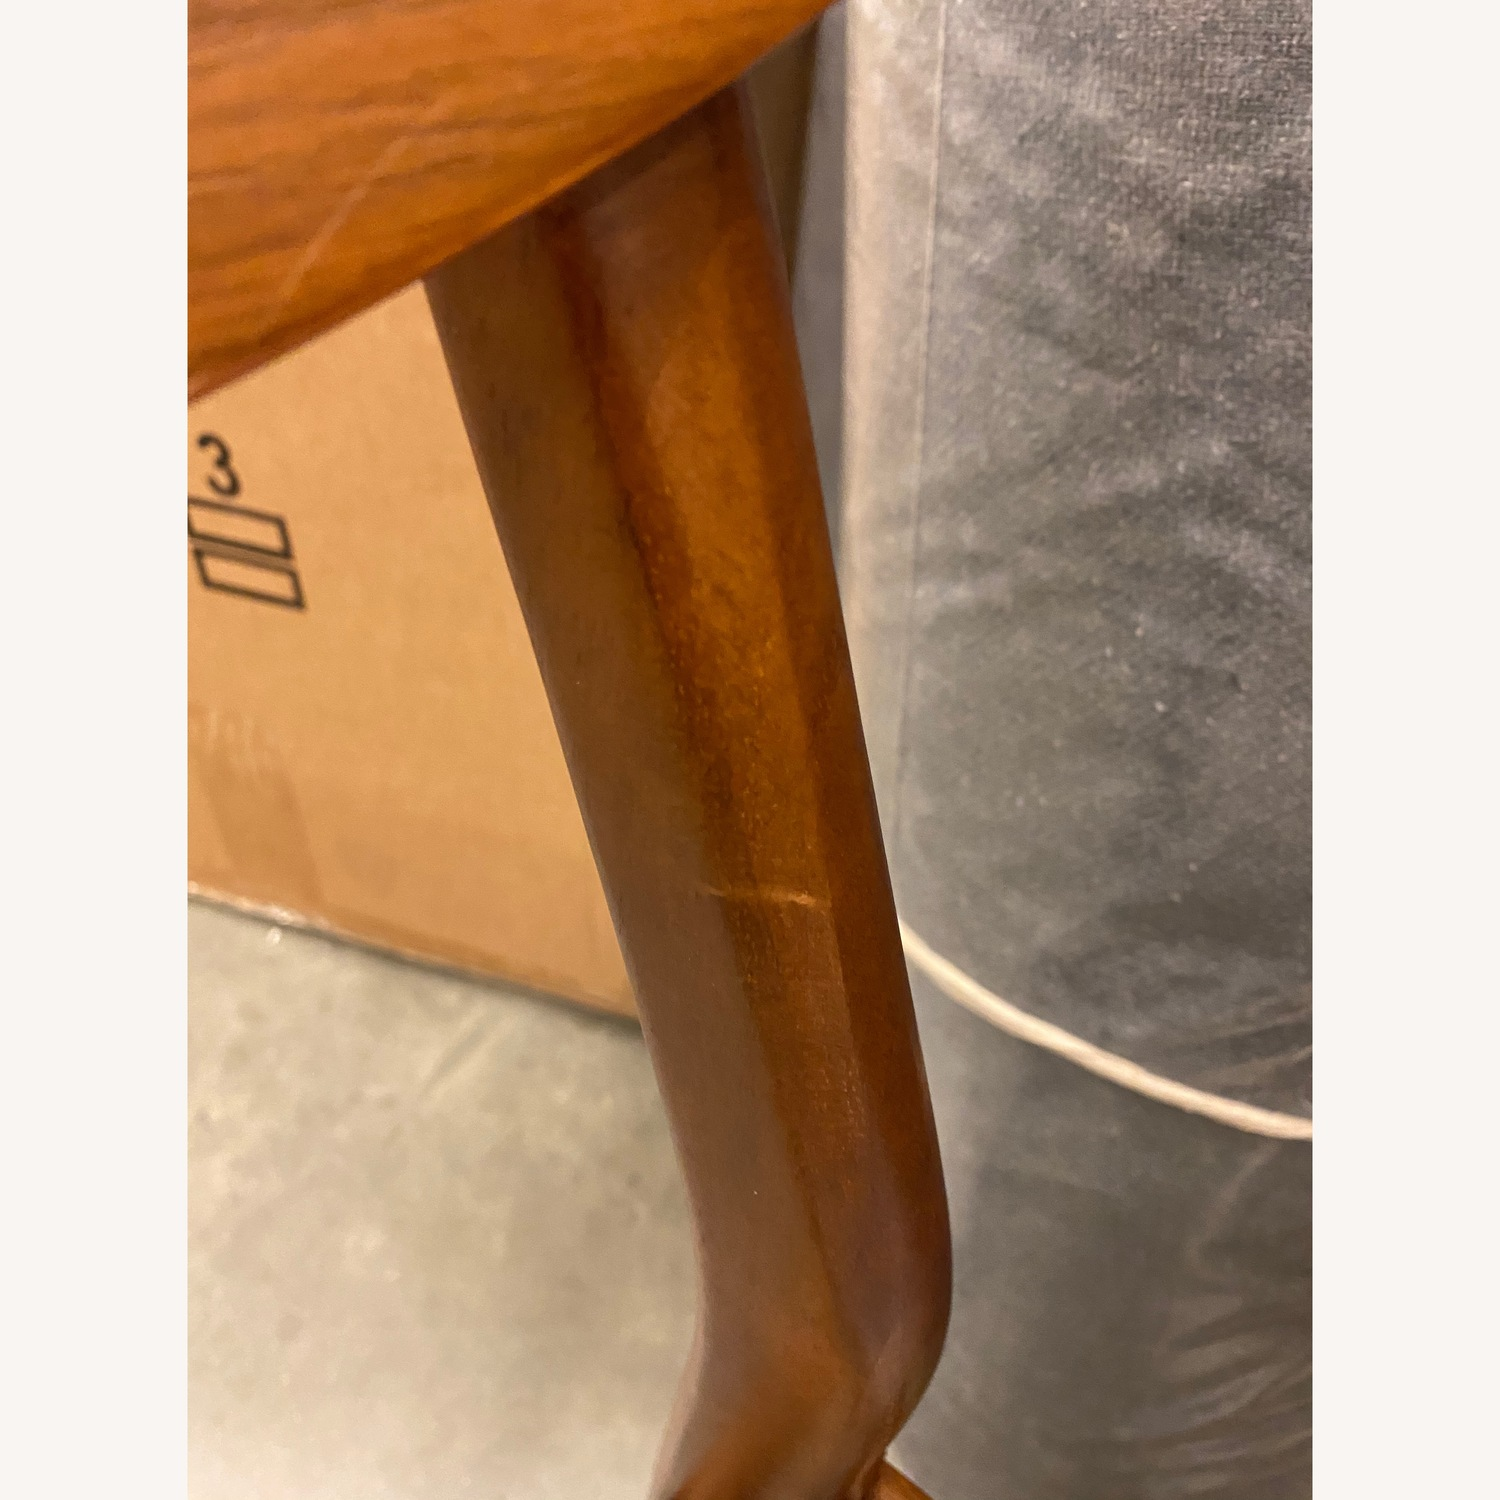 West Elm Classic Cafe Upholstered Dining Chair - image-10